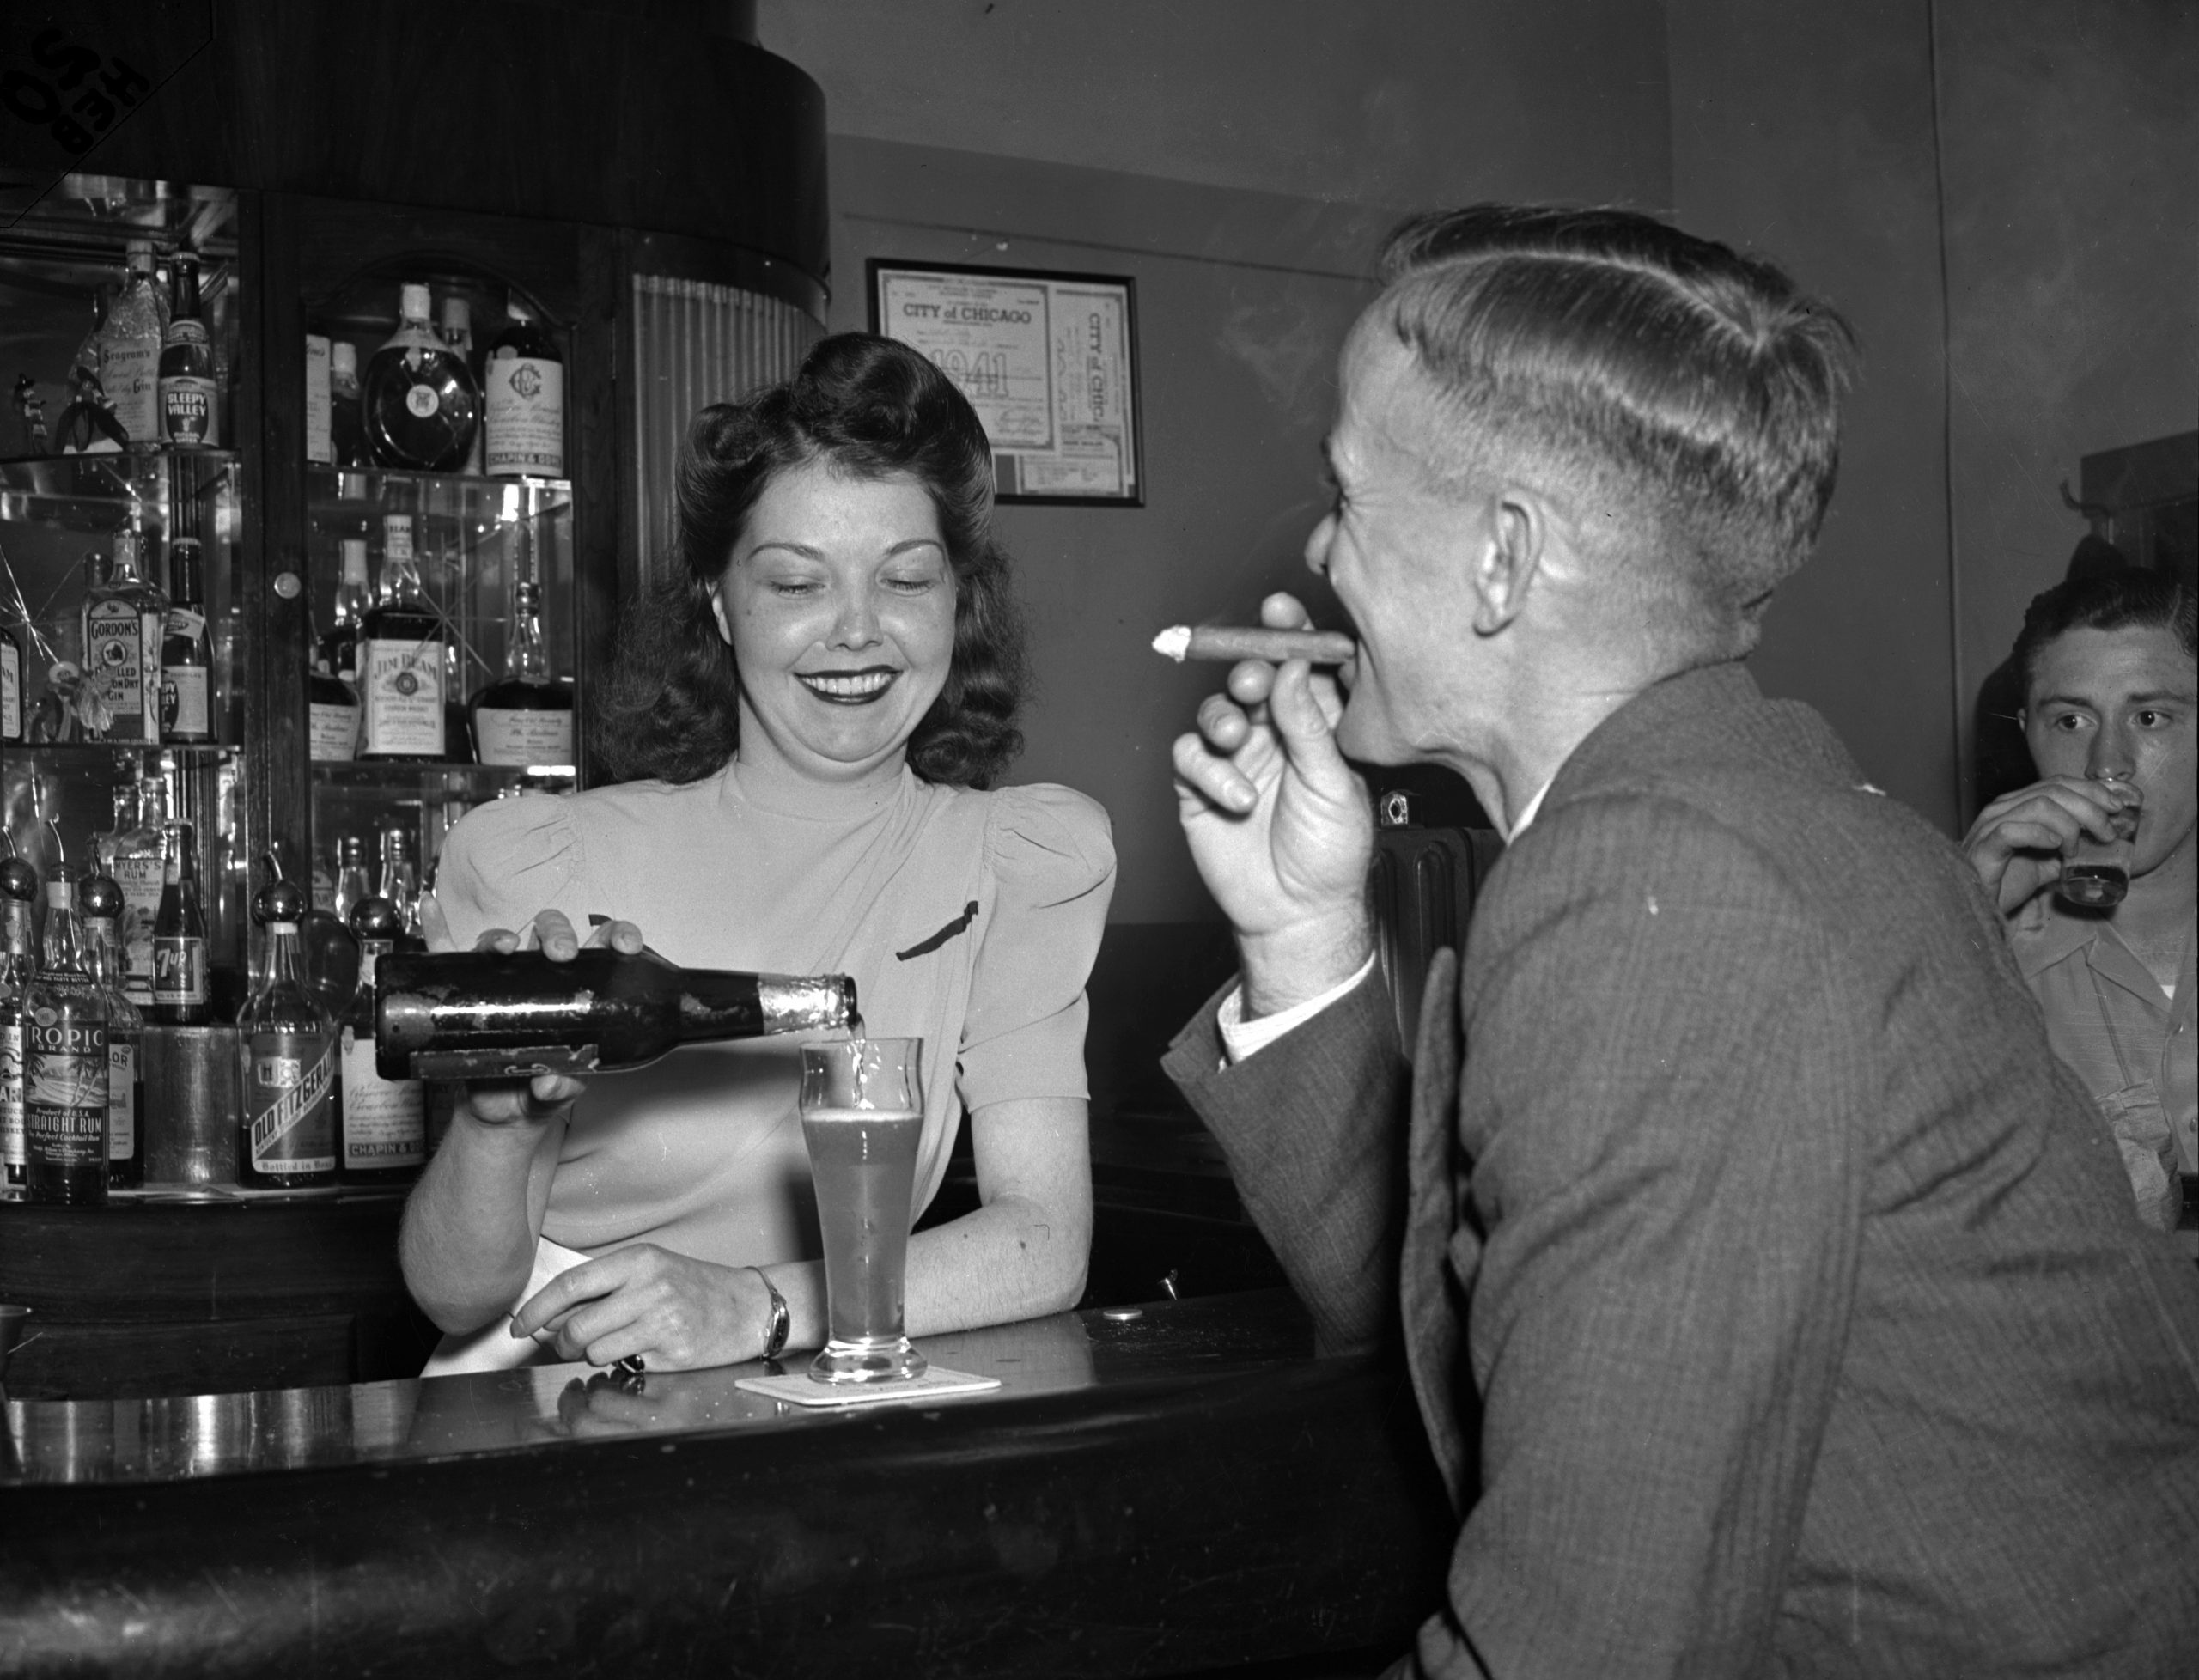 50 Years Ago, Female Bartenders Became Legal In Chicago photo